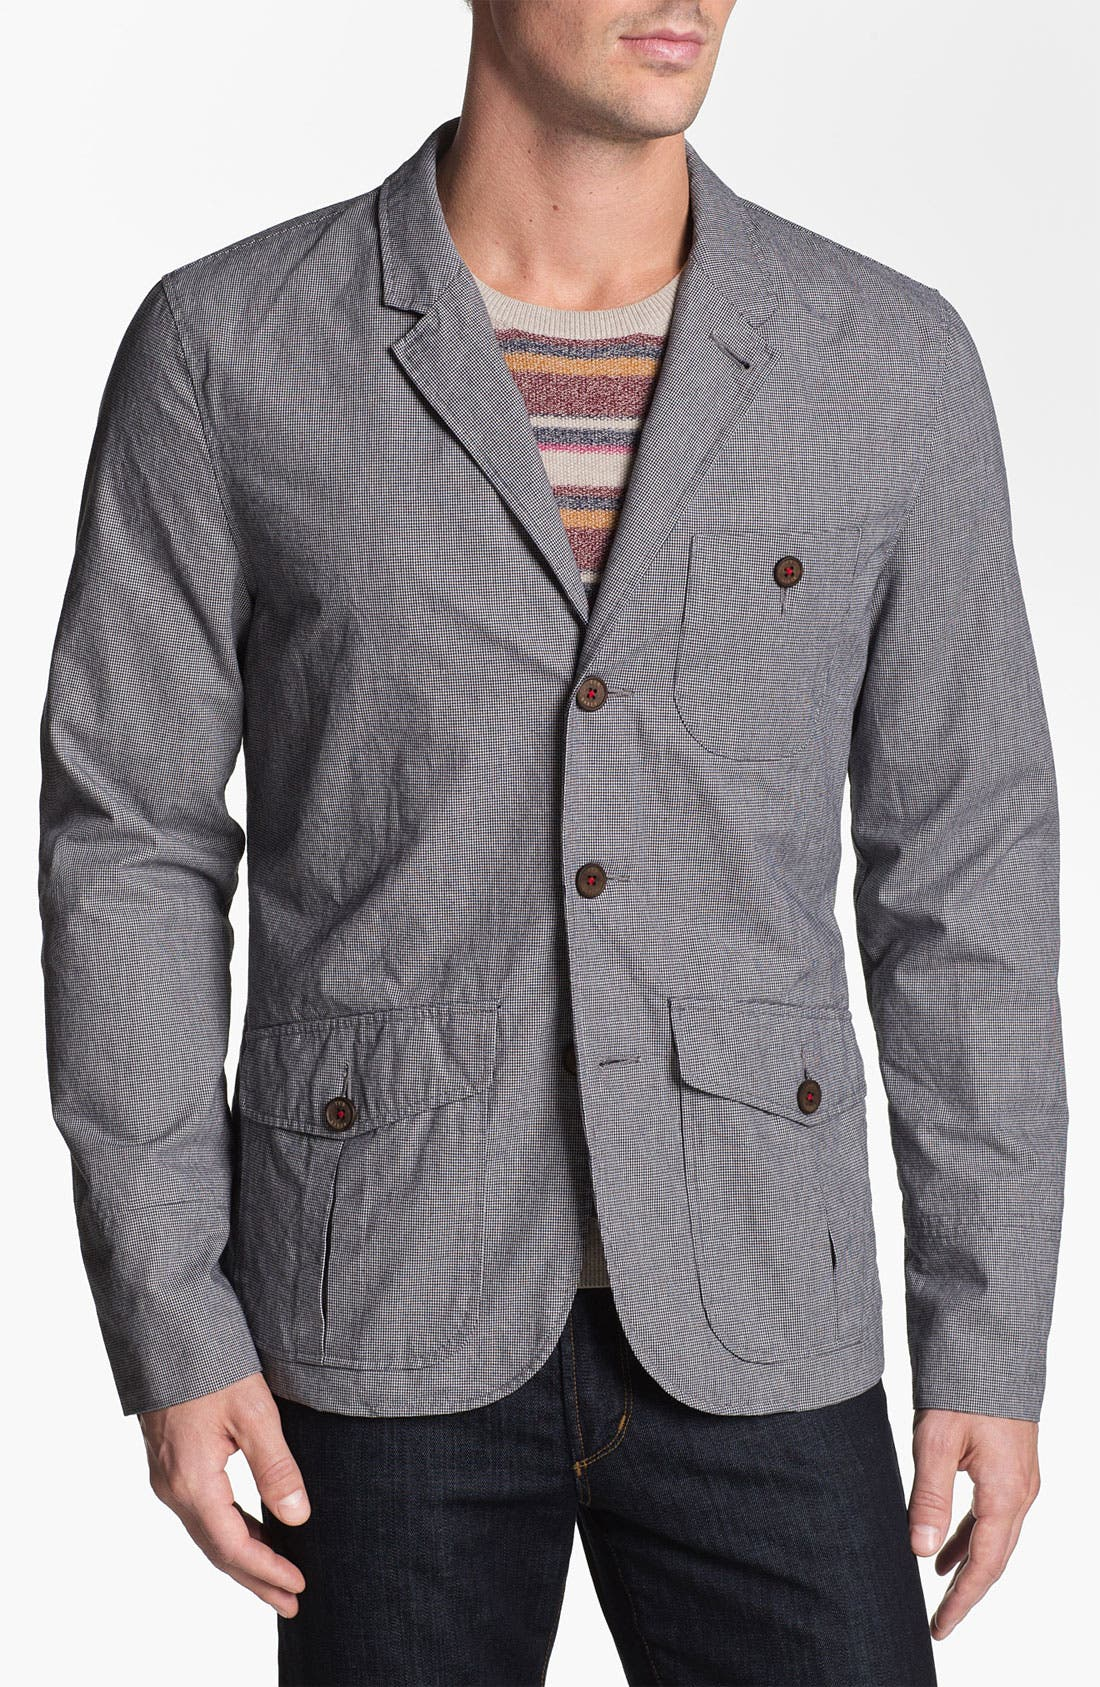 Alternate Image 1 Selected - Ted Baker London Cotton Sportcoat